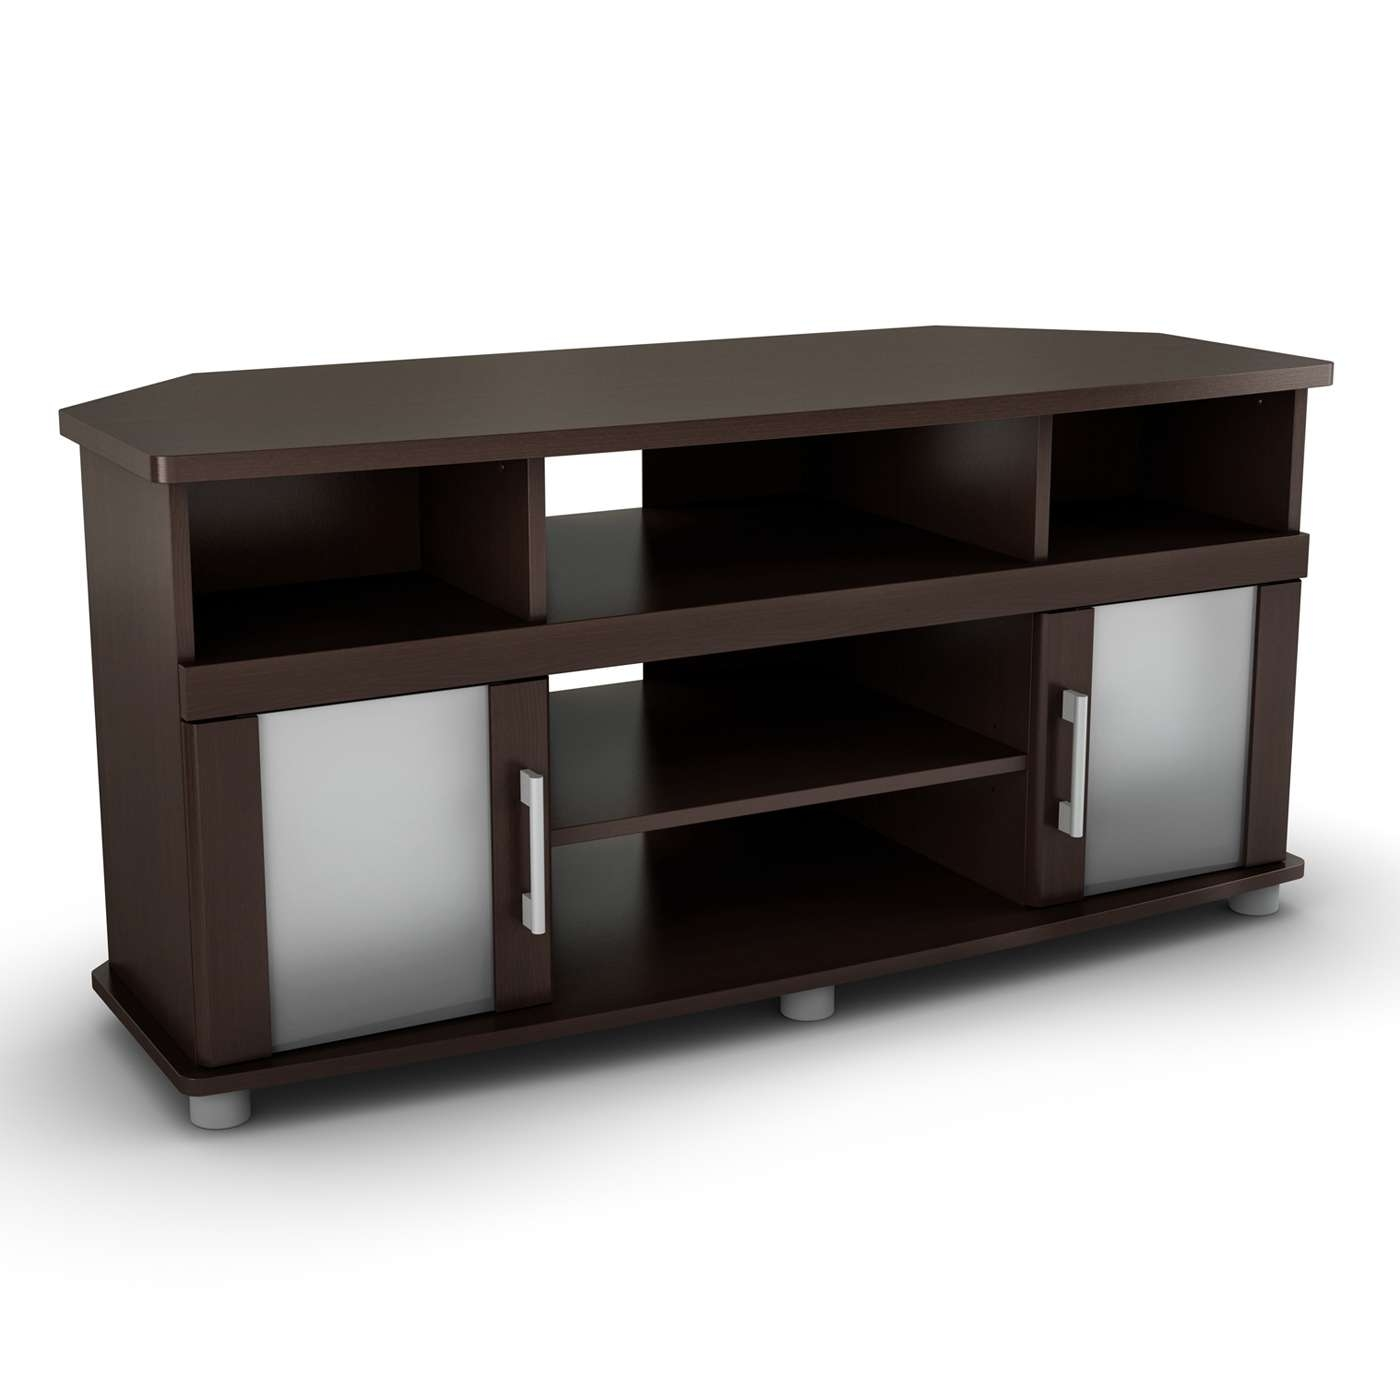 Tv Stands – Corner, Fireplace & More | Lowe's Canada For Tv Stands Rounded Corners (View 14 of 15)